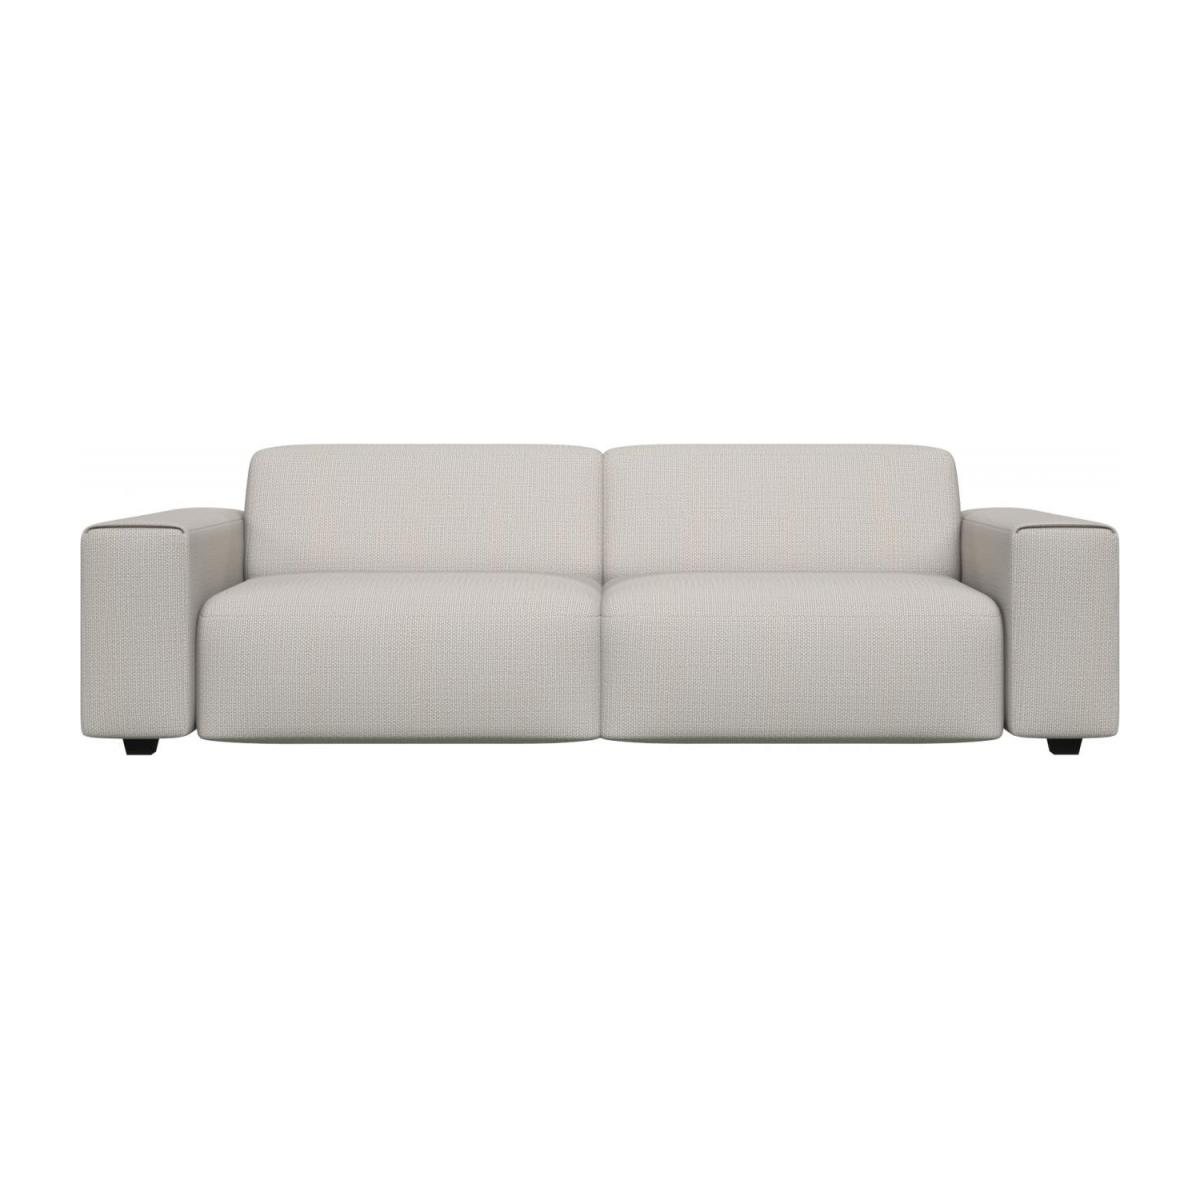 4 seater sofa in Fasoli fabric, snow white n°3